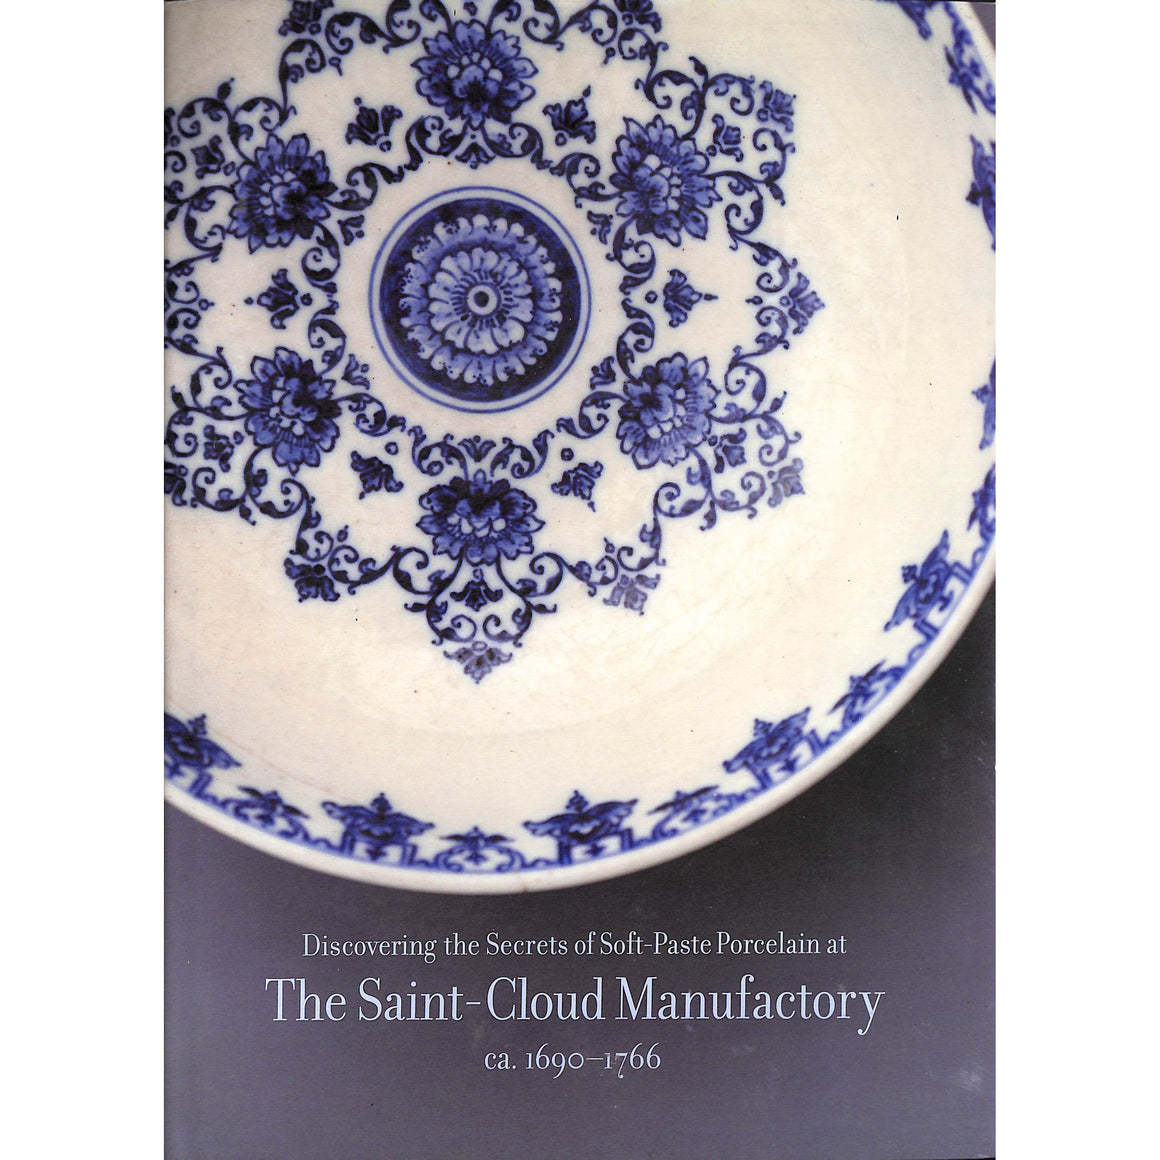 Discovering The Secrets Of Soft-Paste Porcelain AtThe Saint-Cloud Manufactory